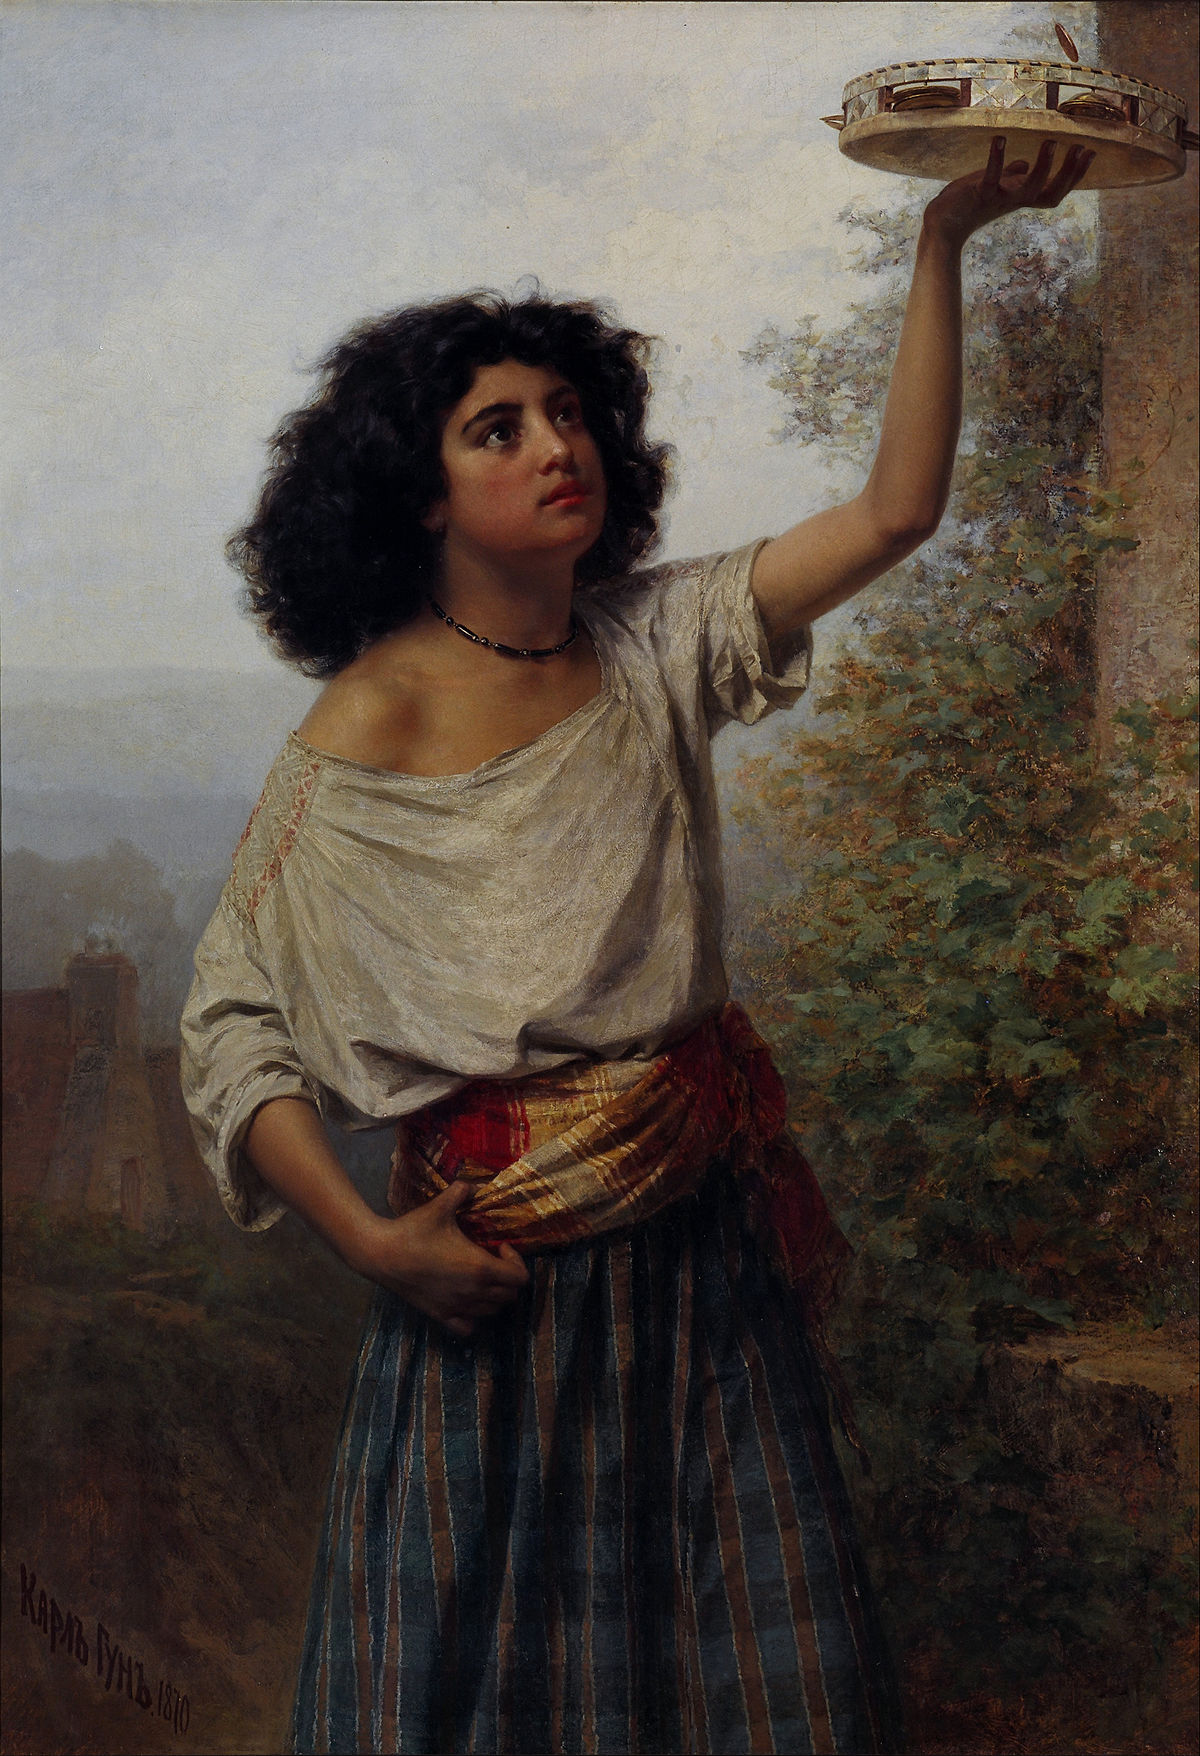 Gypsy Woman Painting Young Gypsy Woman - Wi...